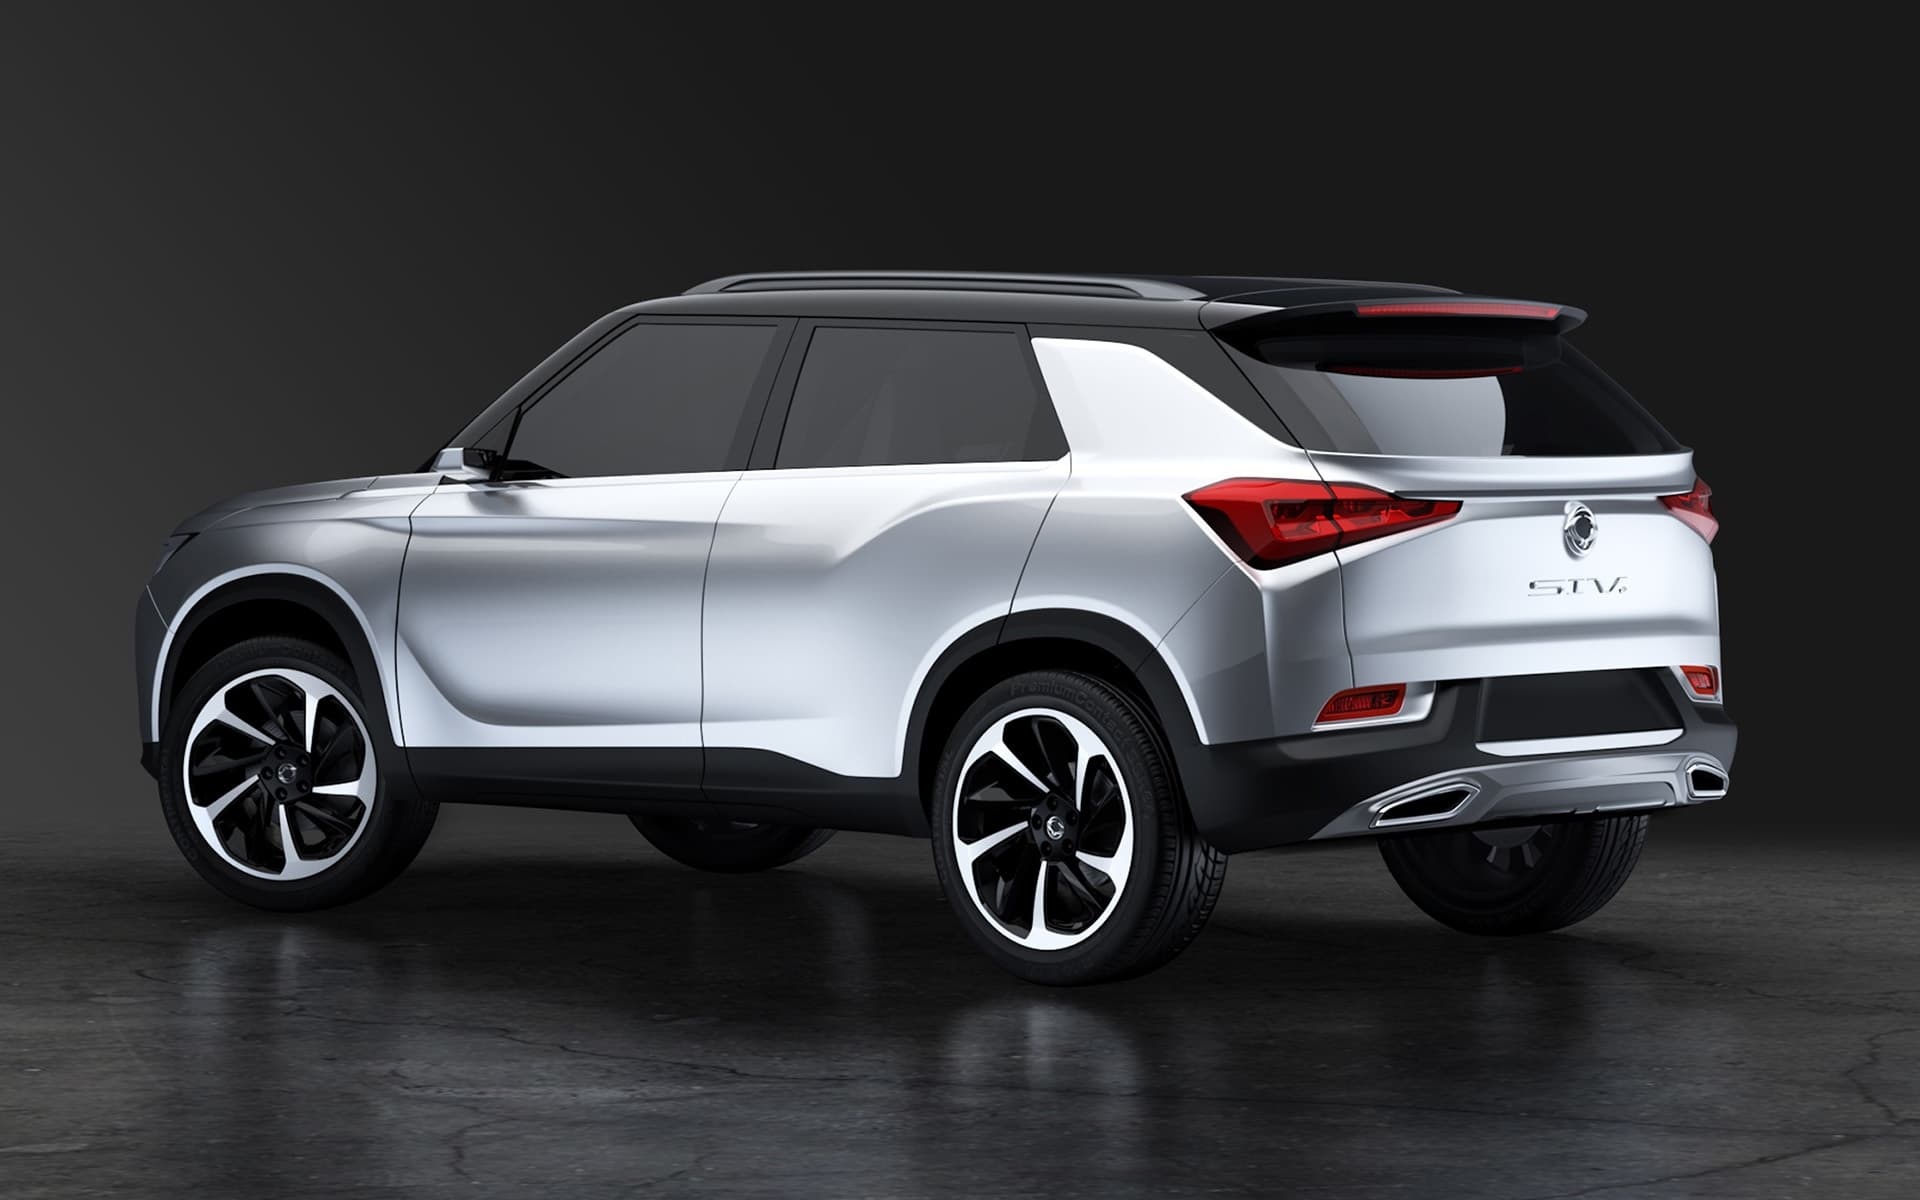 2016 SsangYong SIV 2 Concept SUV 1 Wheels Background HD